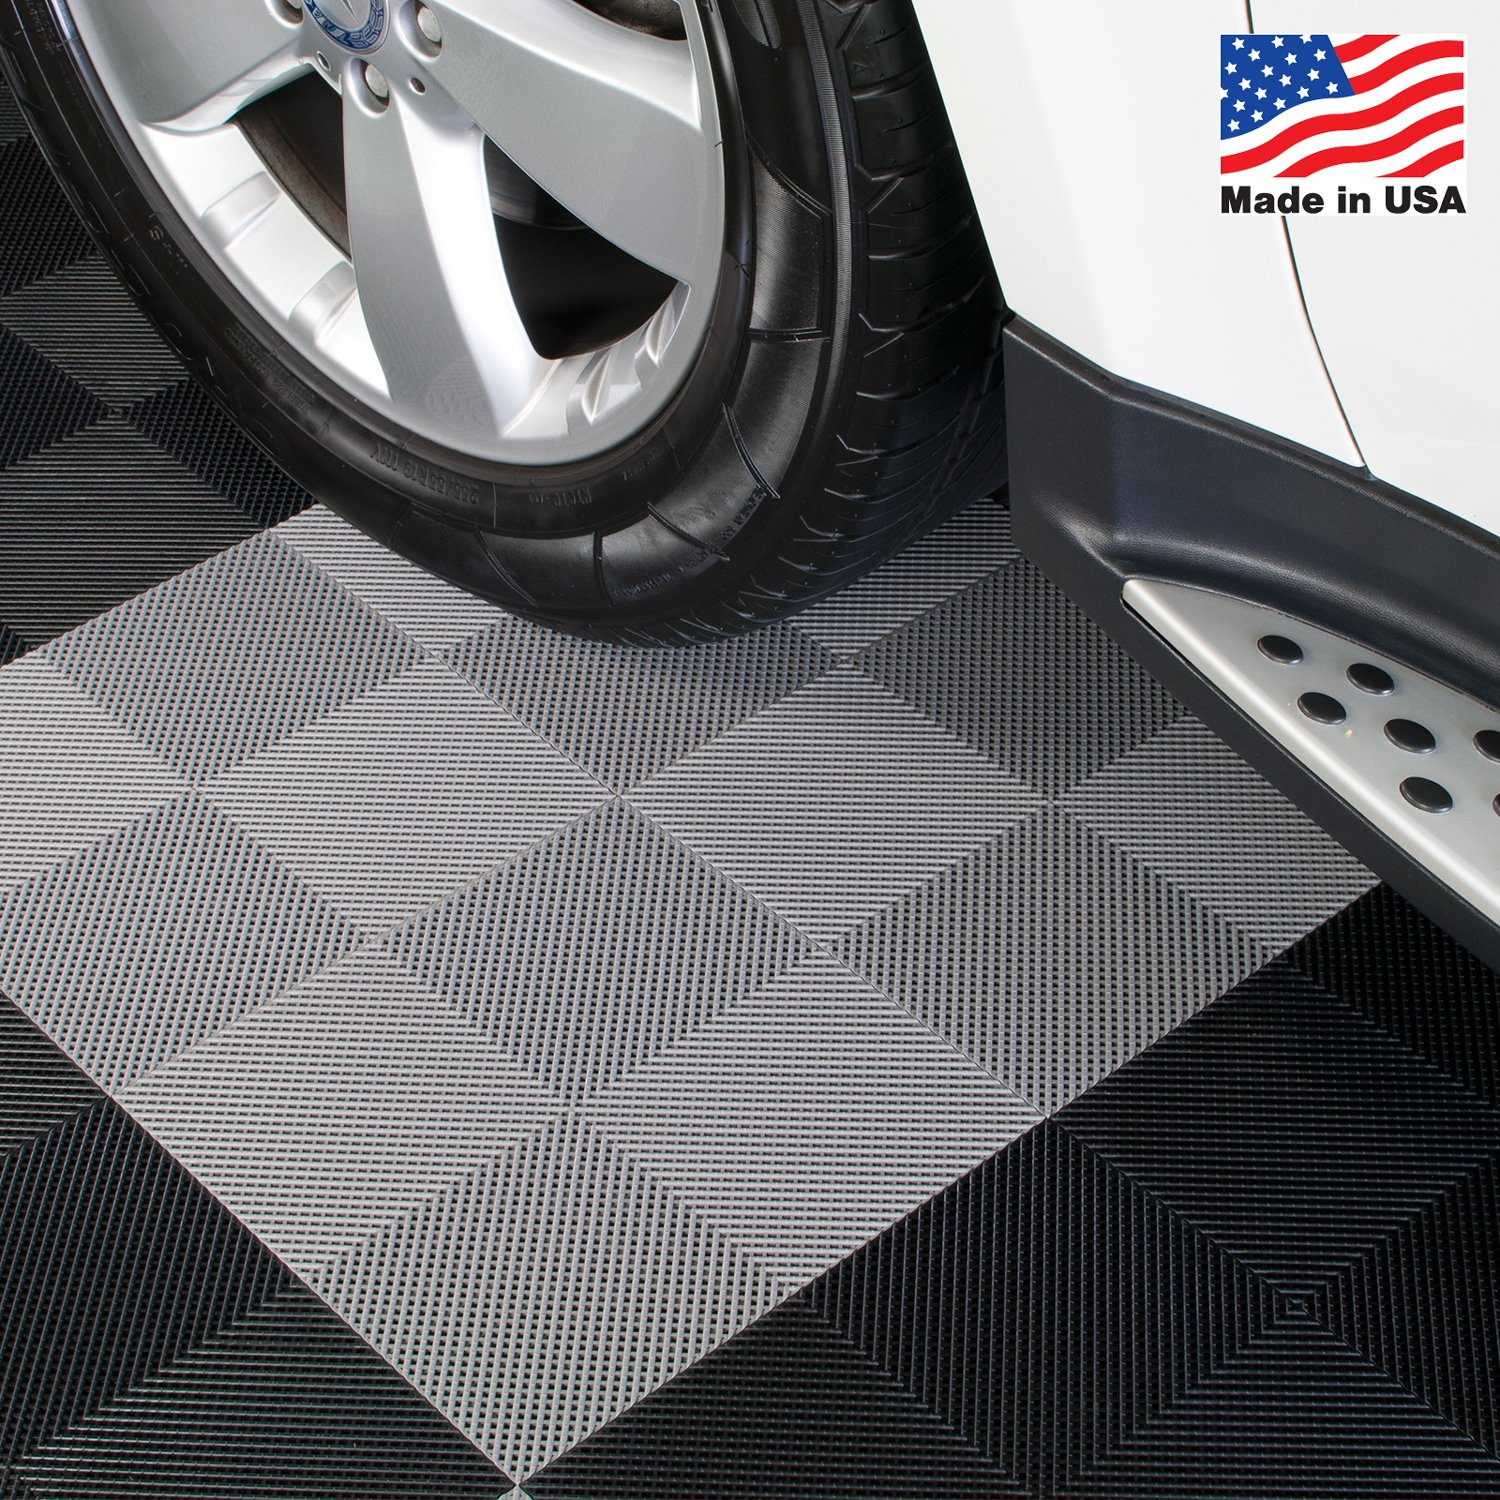 BlockTile B2US4630 Deck and Patio Flooring Interlocking Tiles Perforated Pack, Gray, 30-Pack by BlockTile (Image #2)